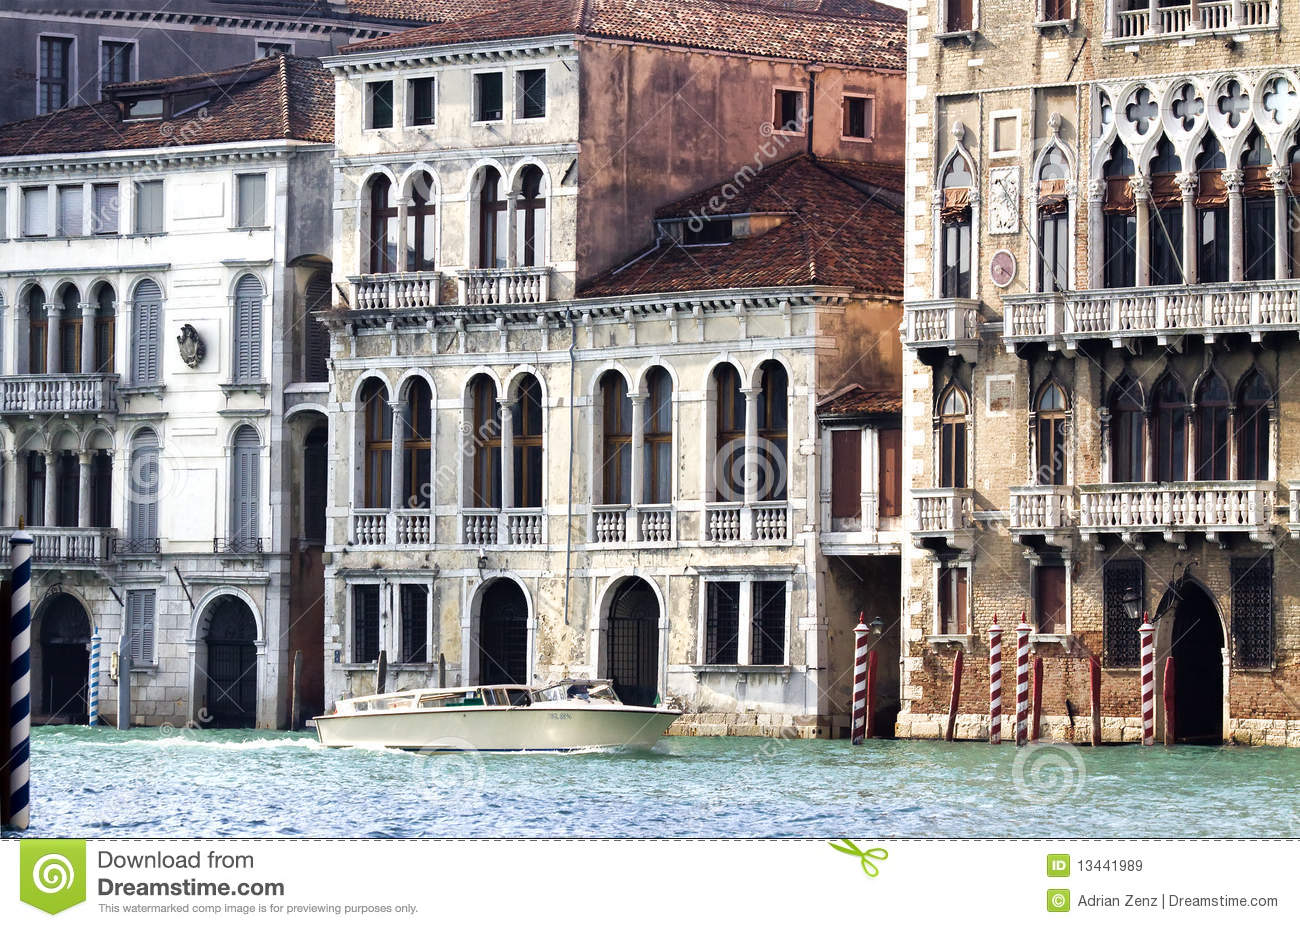 Houses along the Grand Canal, Venice